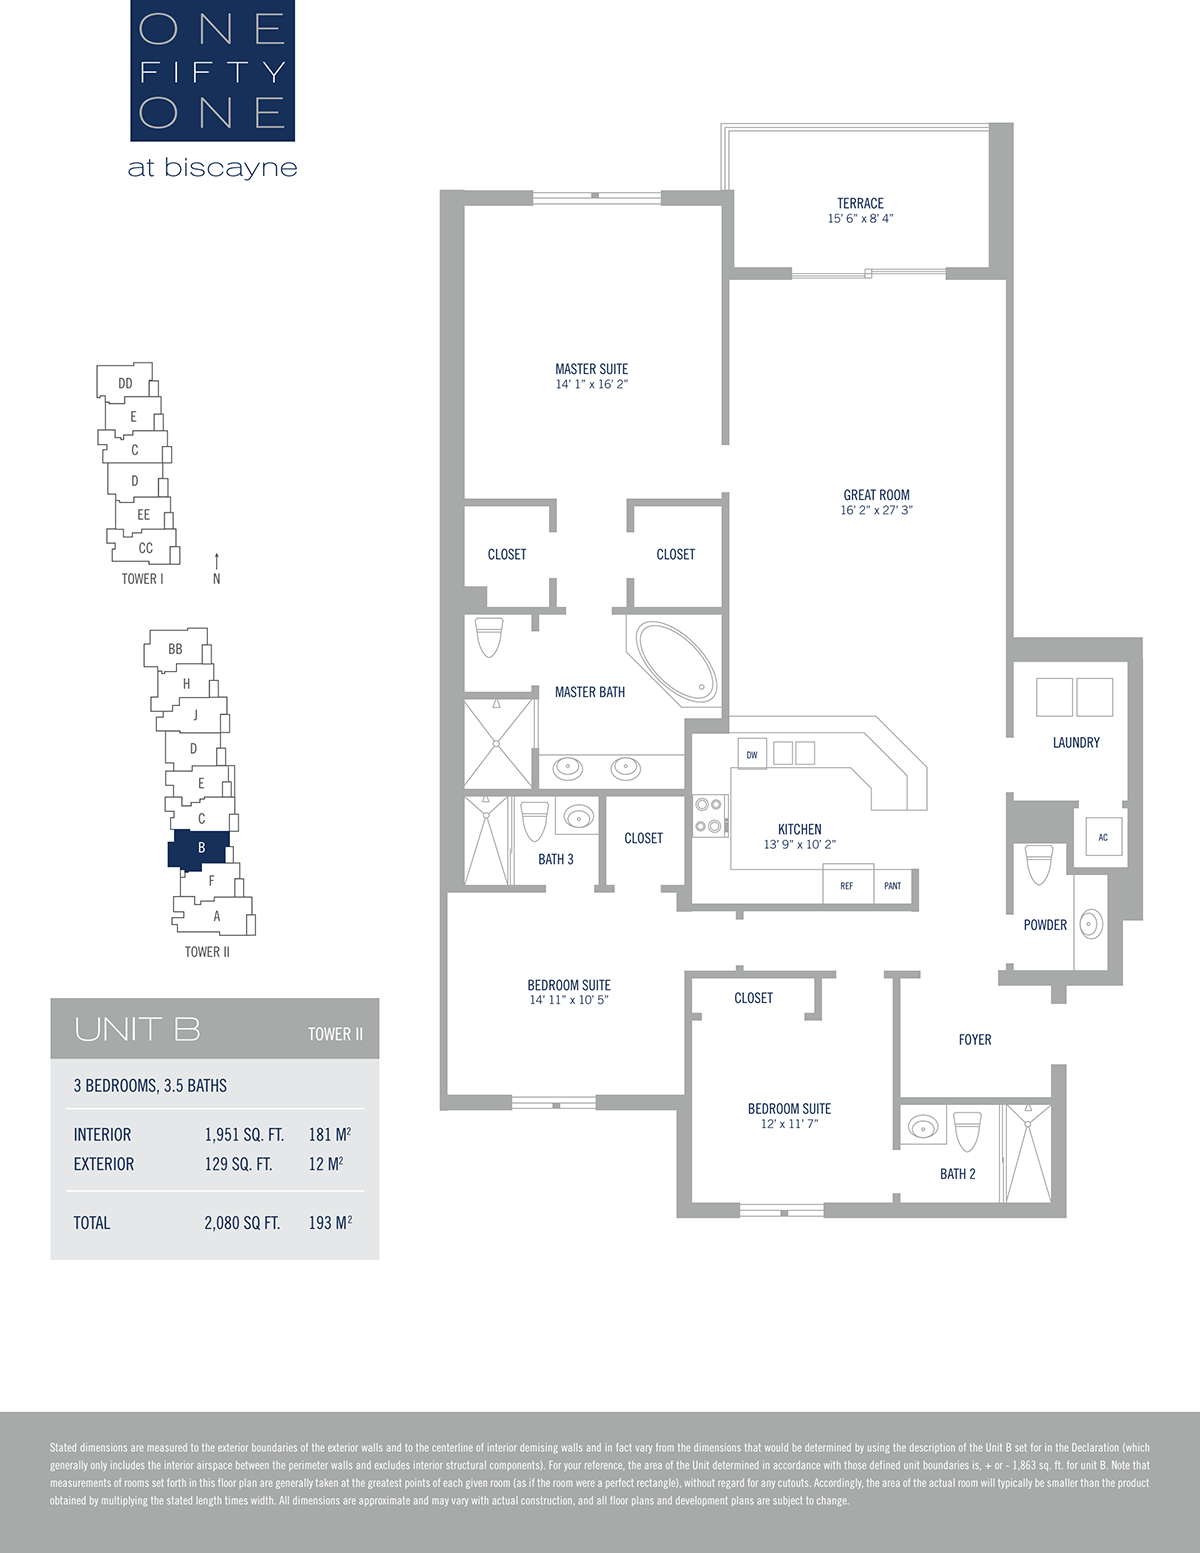 One Fifty One At Biscayne - Floorplan 1